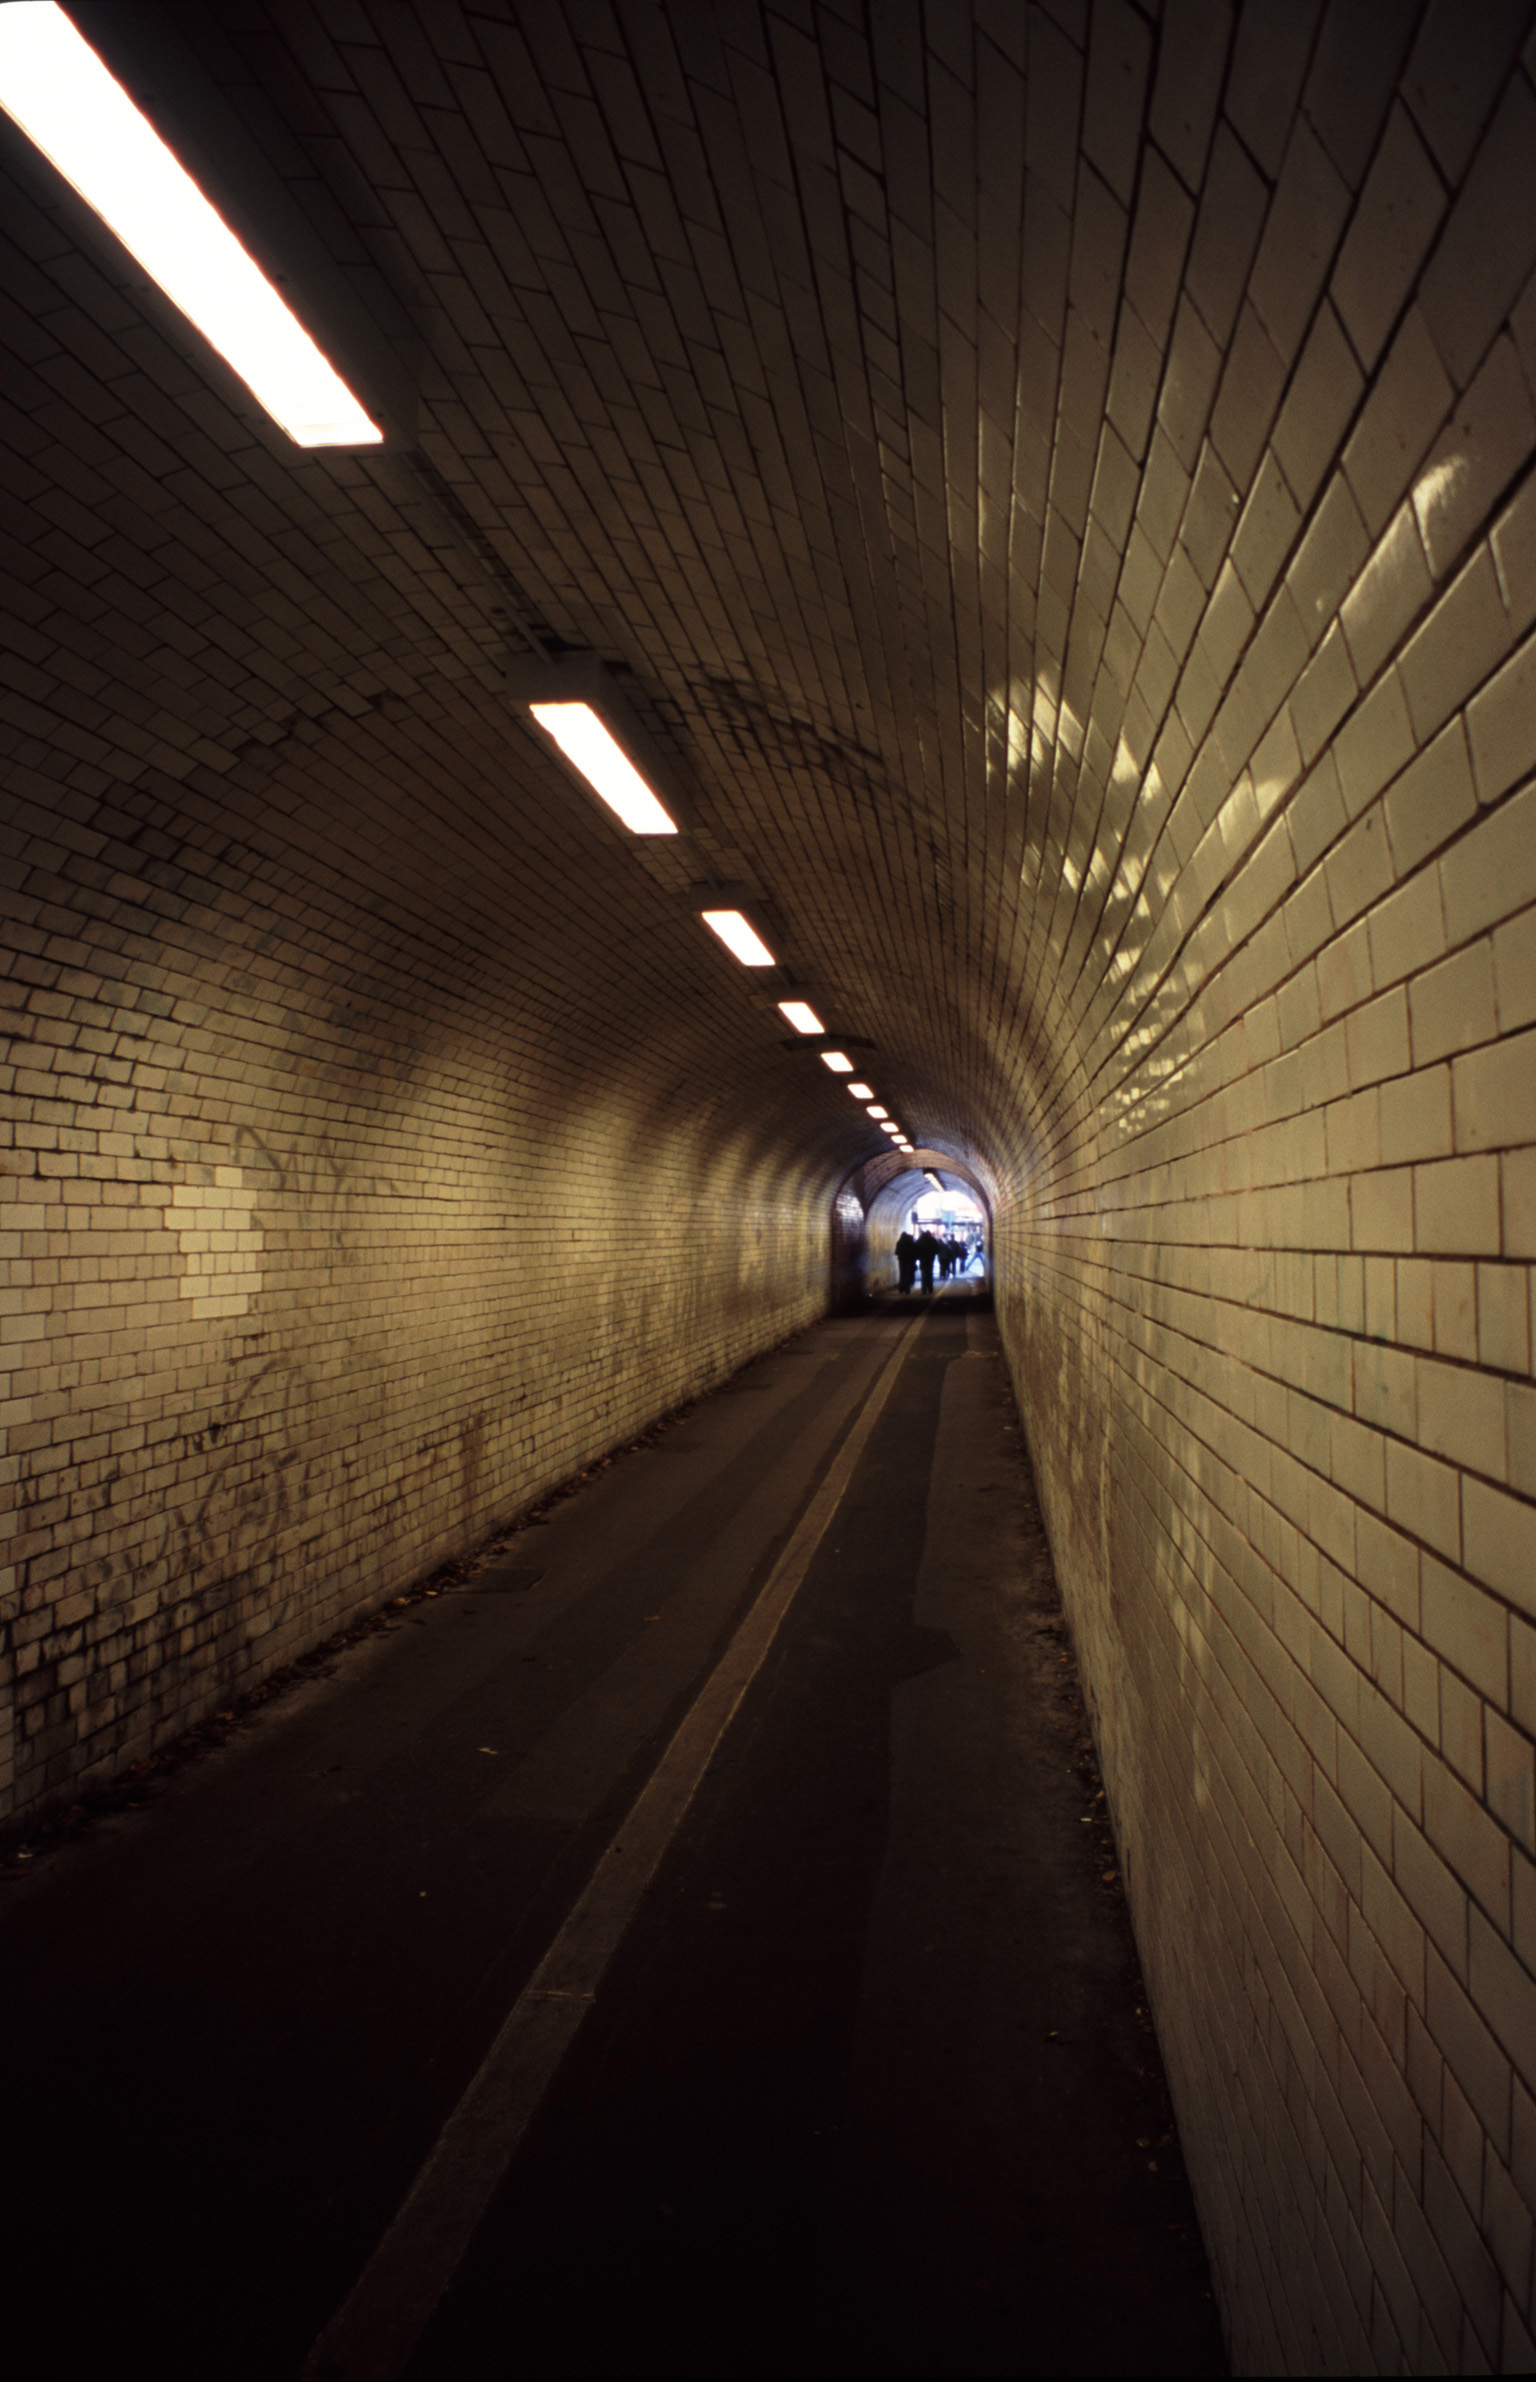 Narrow brick pedestrian underpass lit by overhead fluorescent lights receding into the distance in a straight line